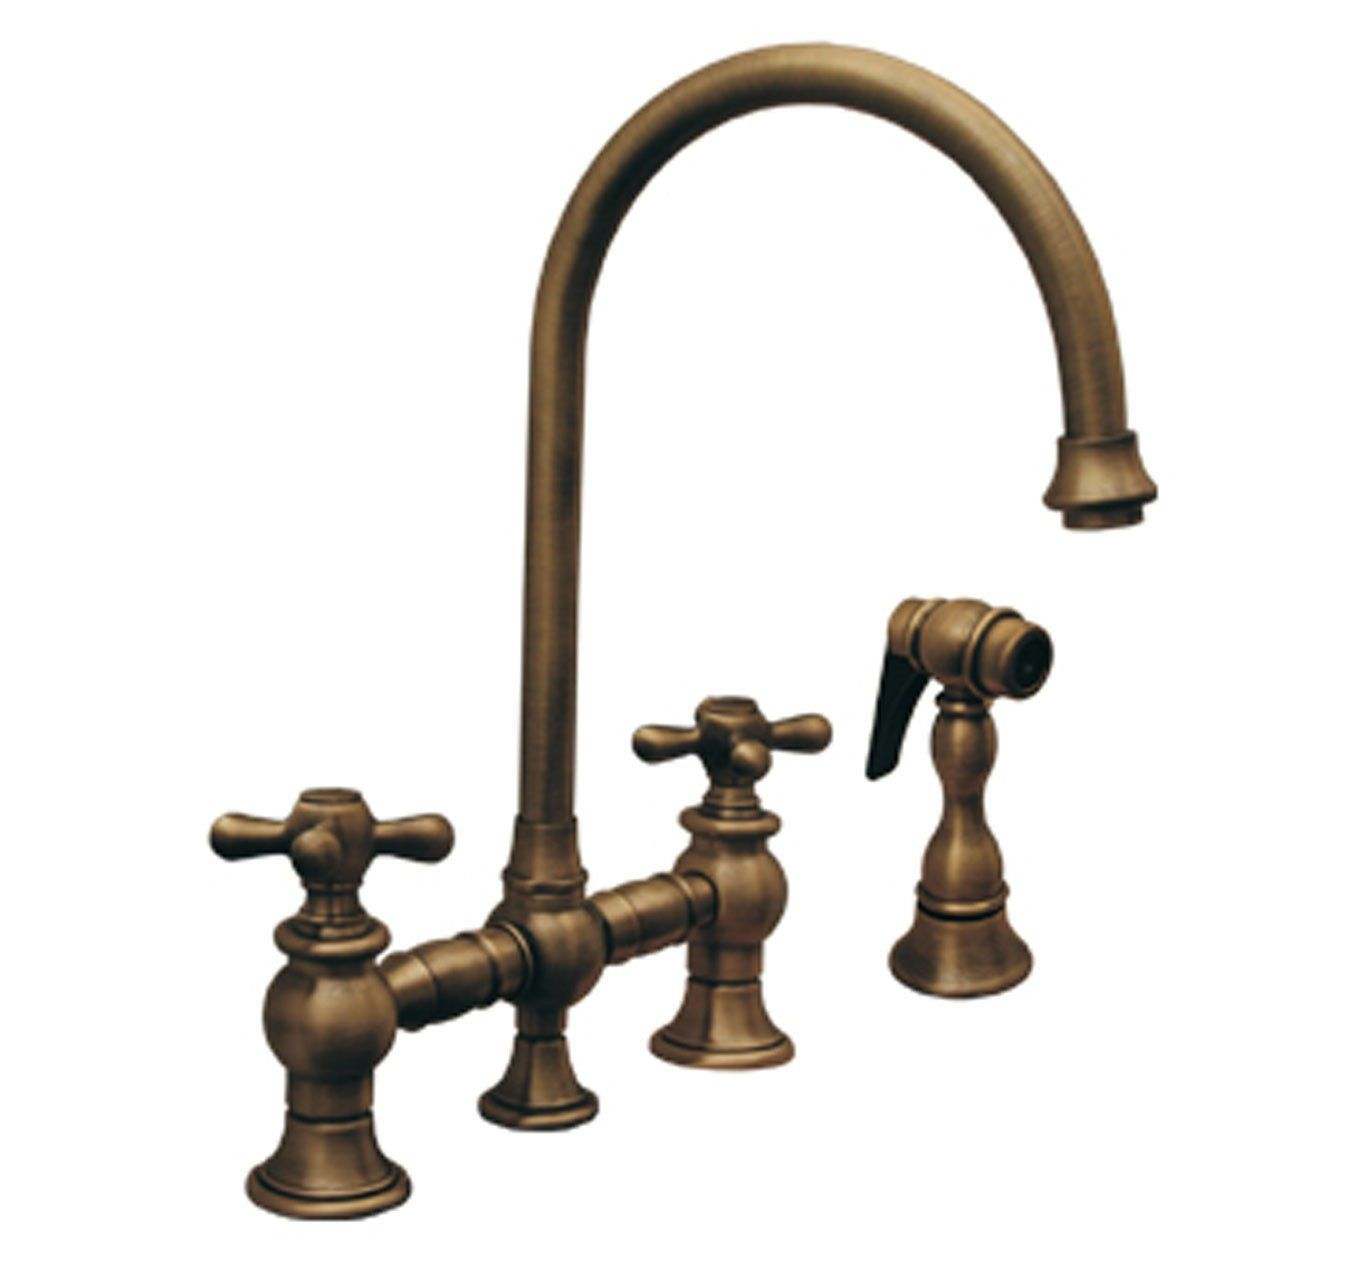 Whitehaus WHKBCR3 9101 ACO Vintage Iii 8 1/8 Inch Bridge Faucet. Kitchen ...